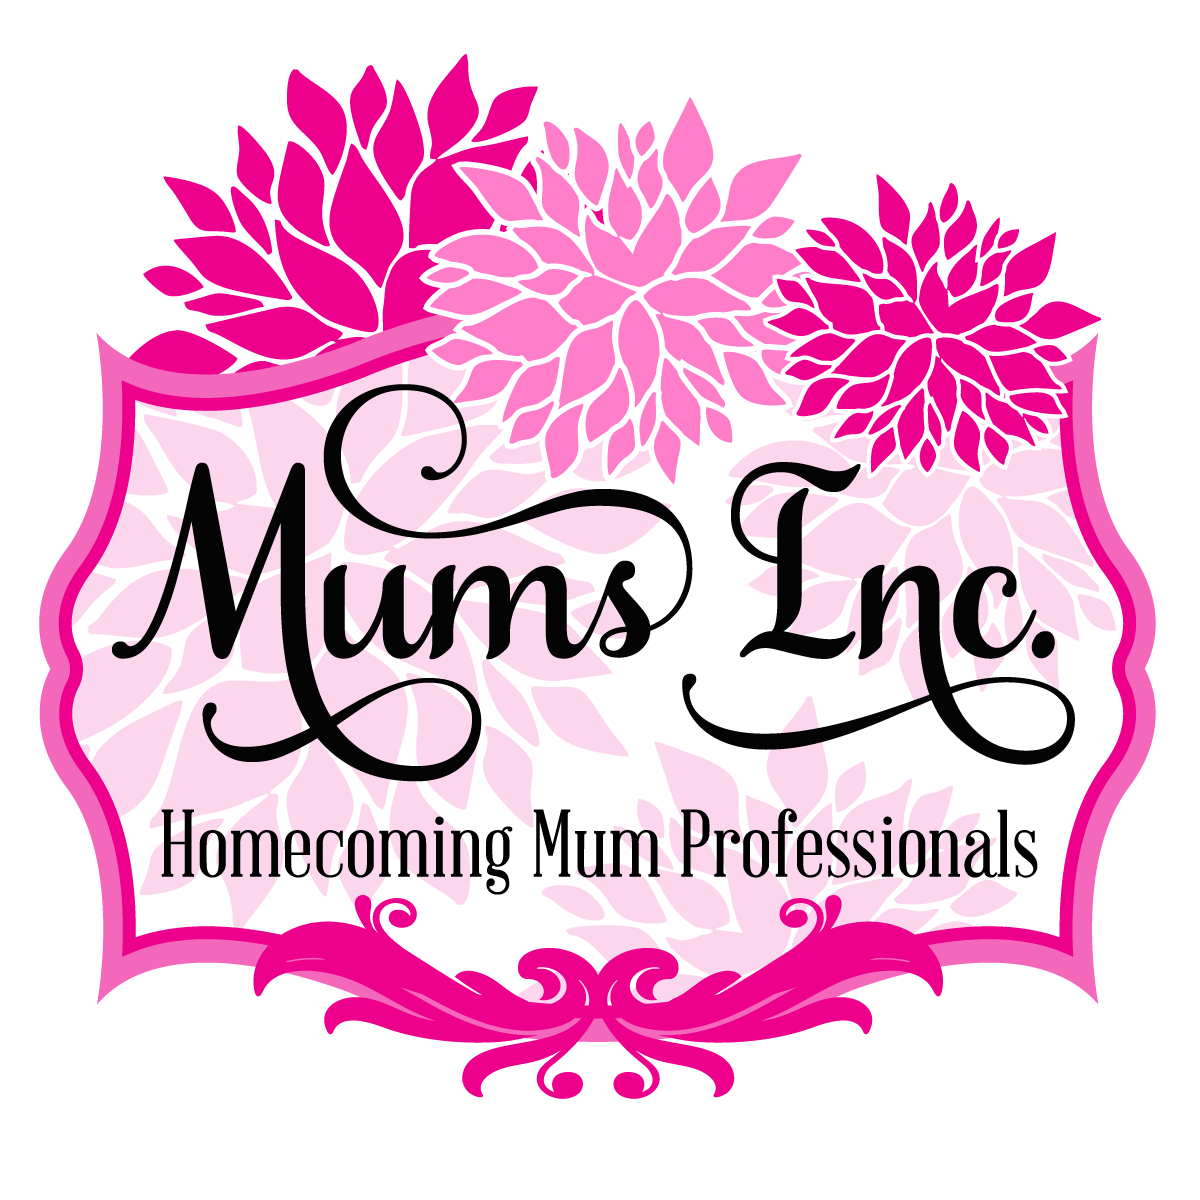 Houston Area Homecoming Mums Find A Mum